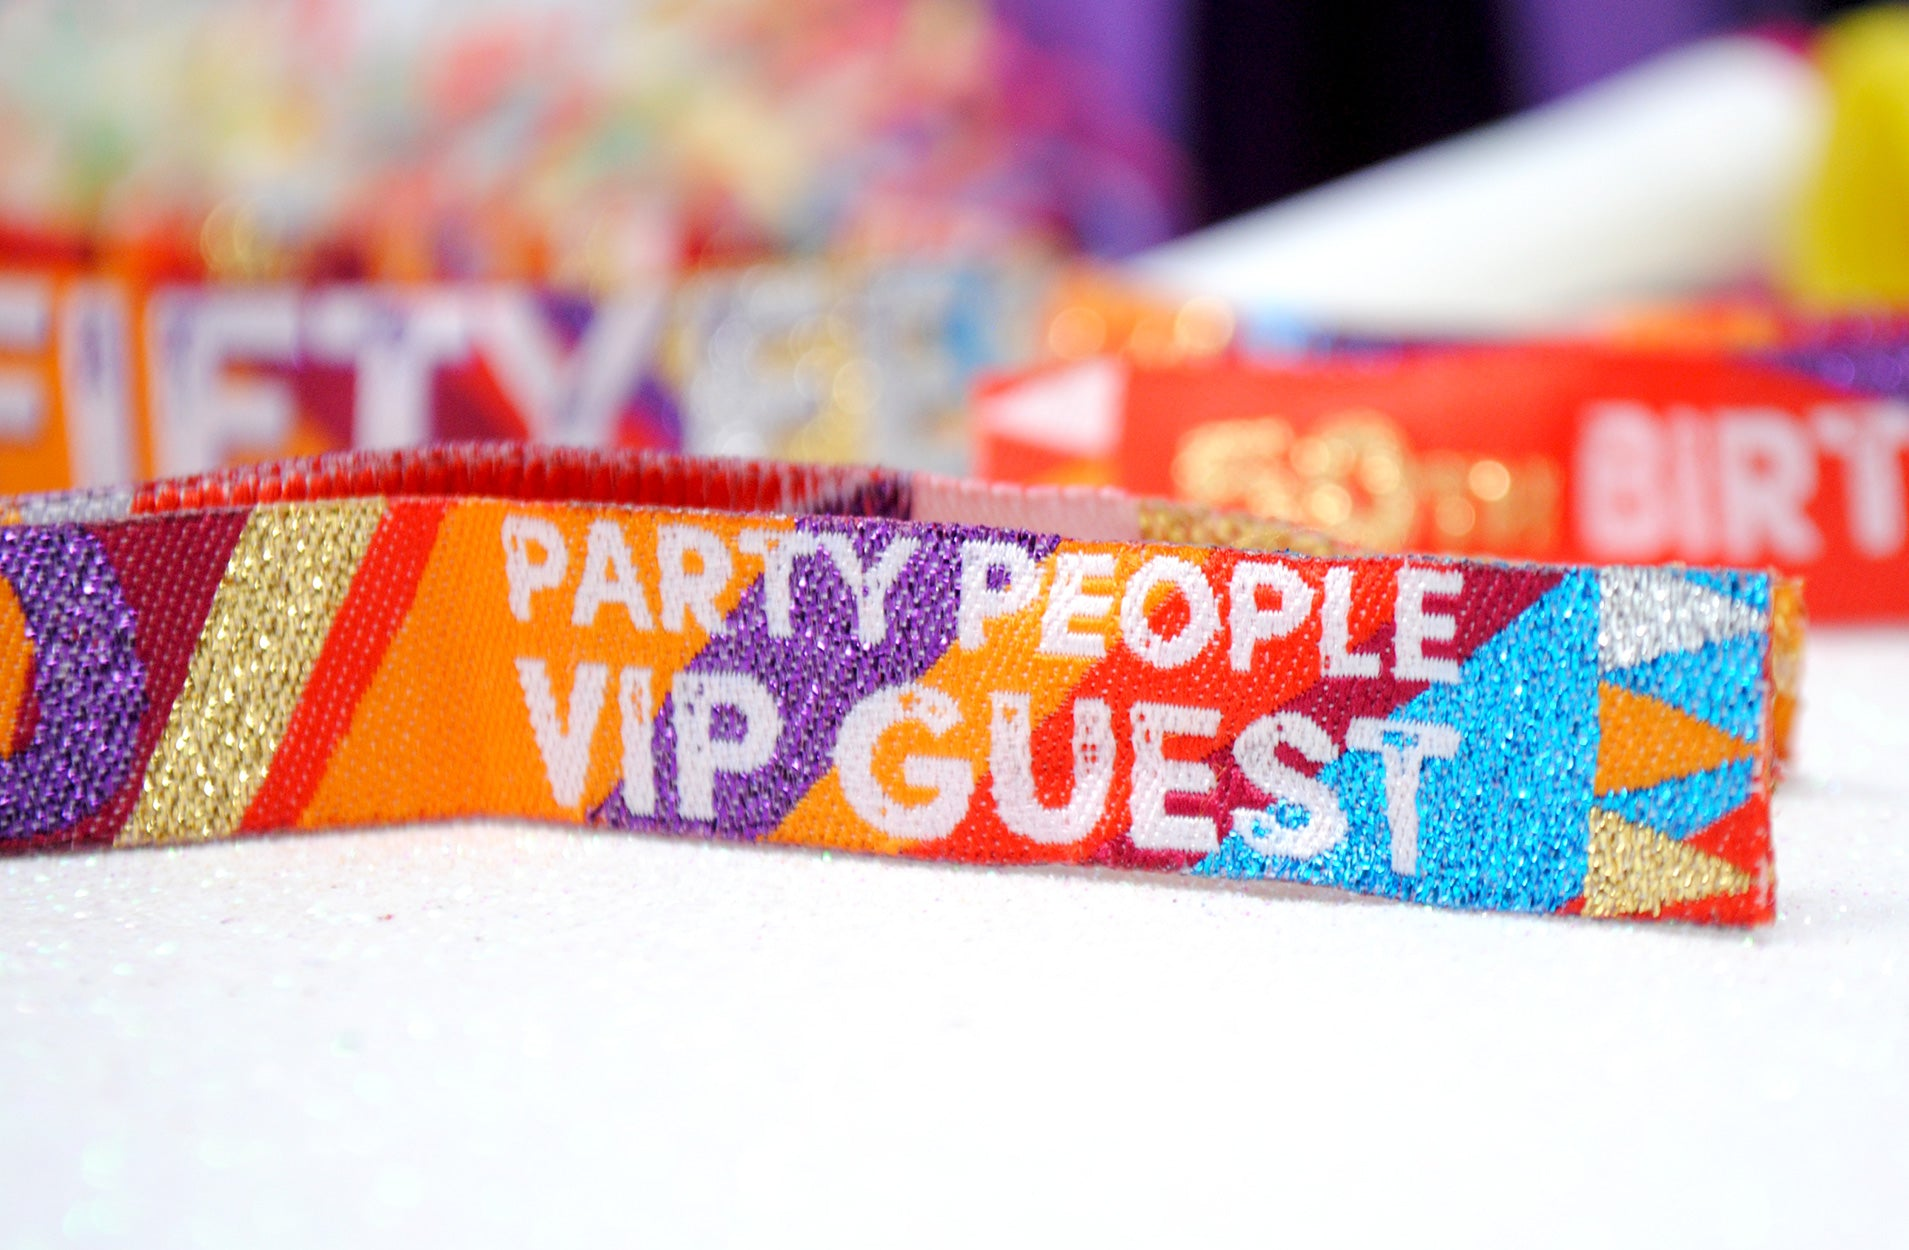 50th festival party birthdayfest wristbands